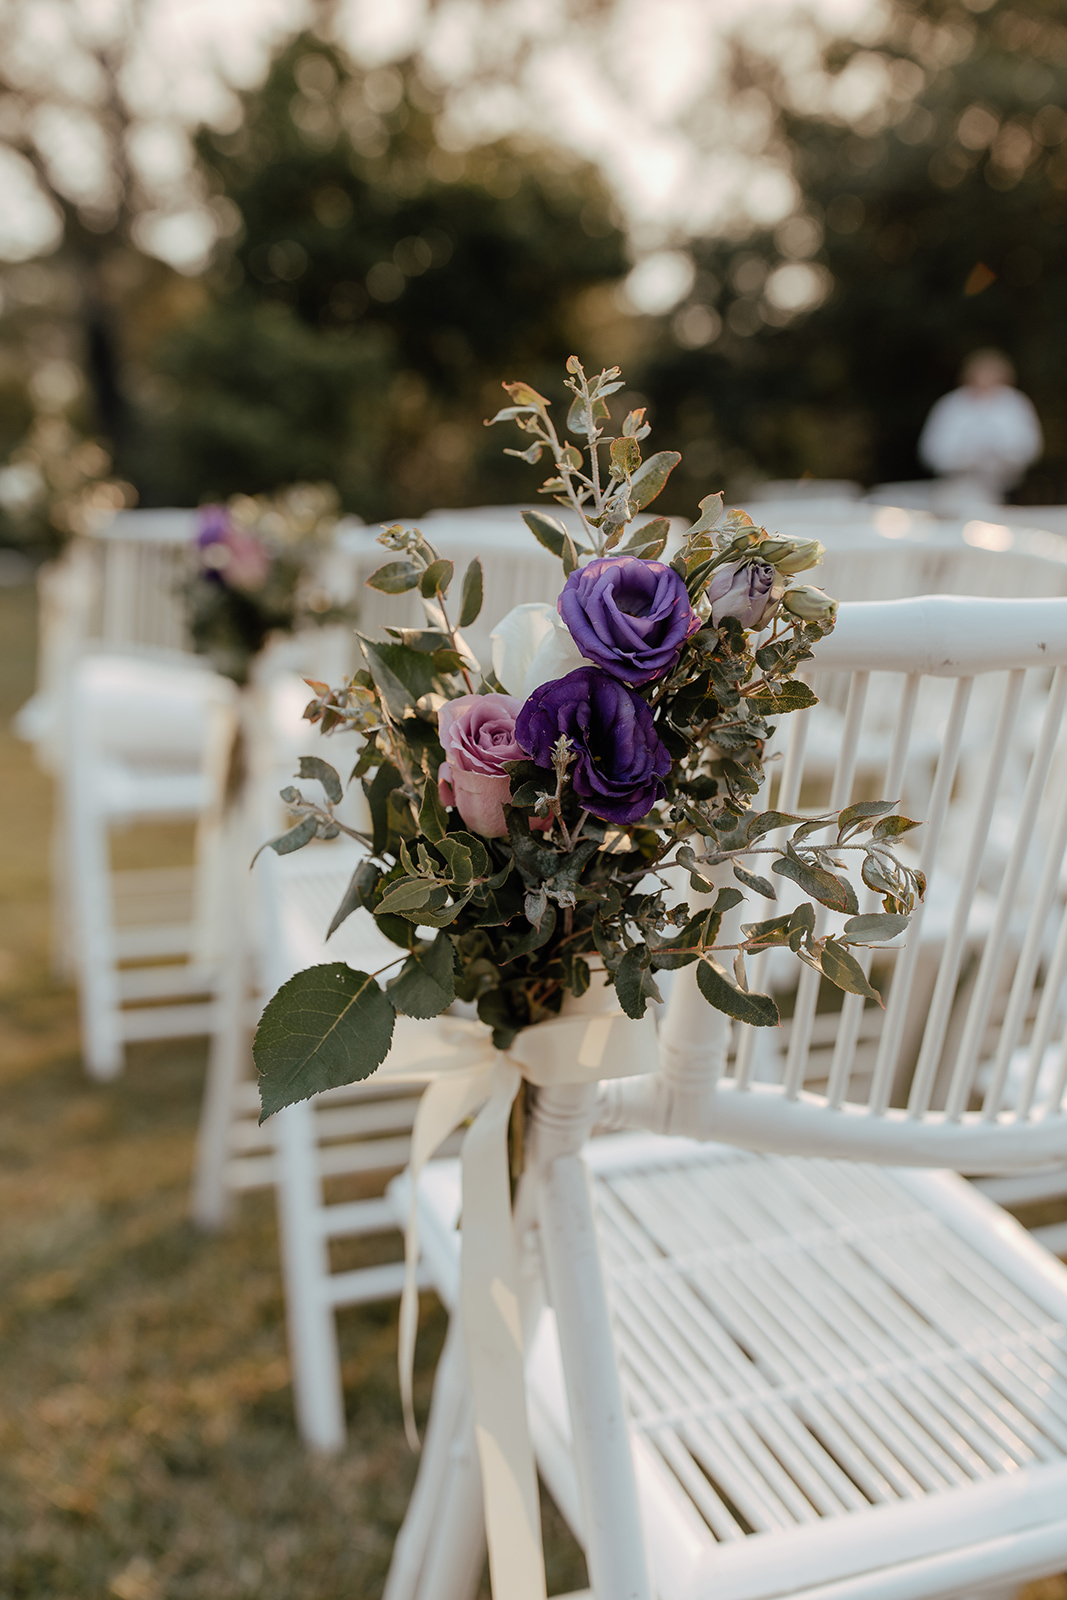 Wedding chair flowers.jpg